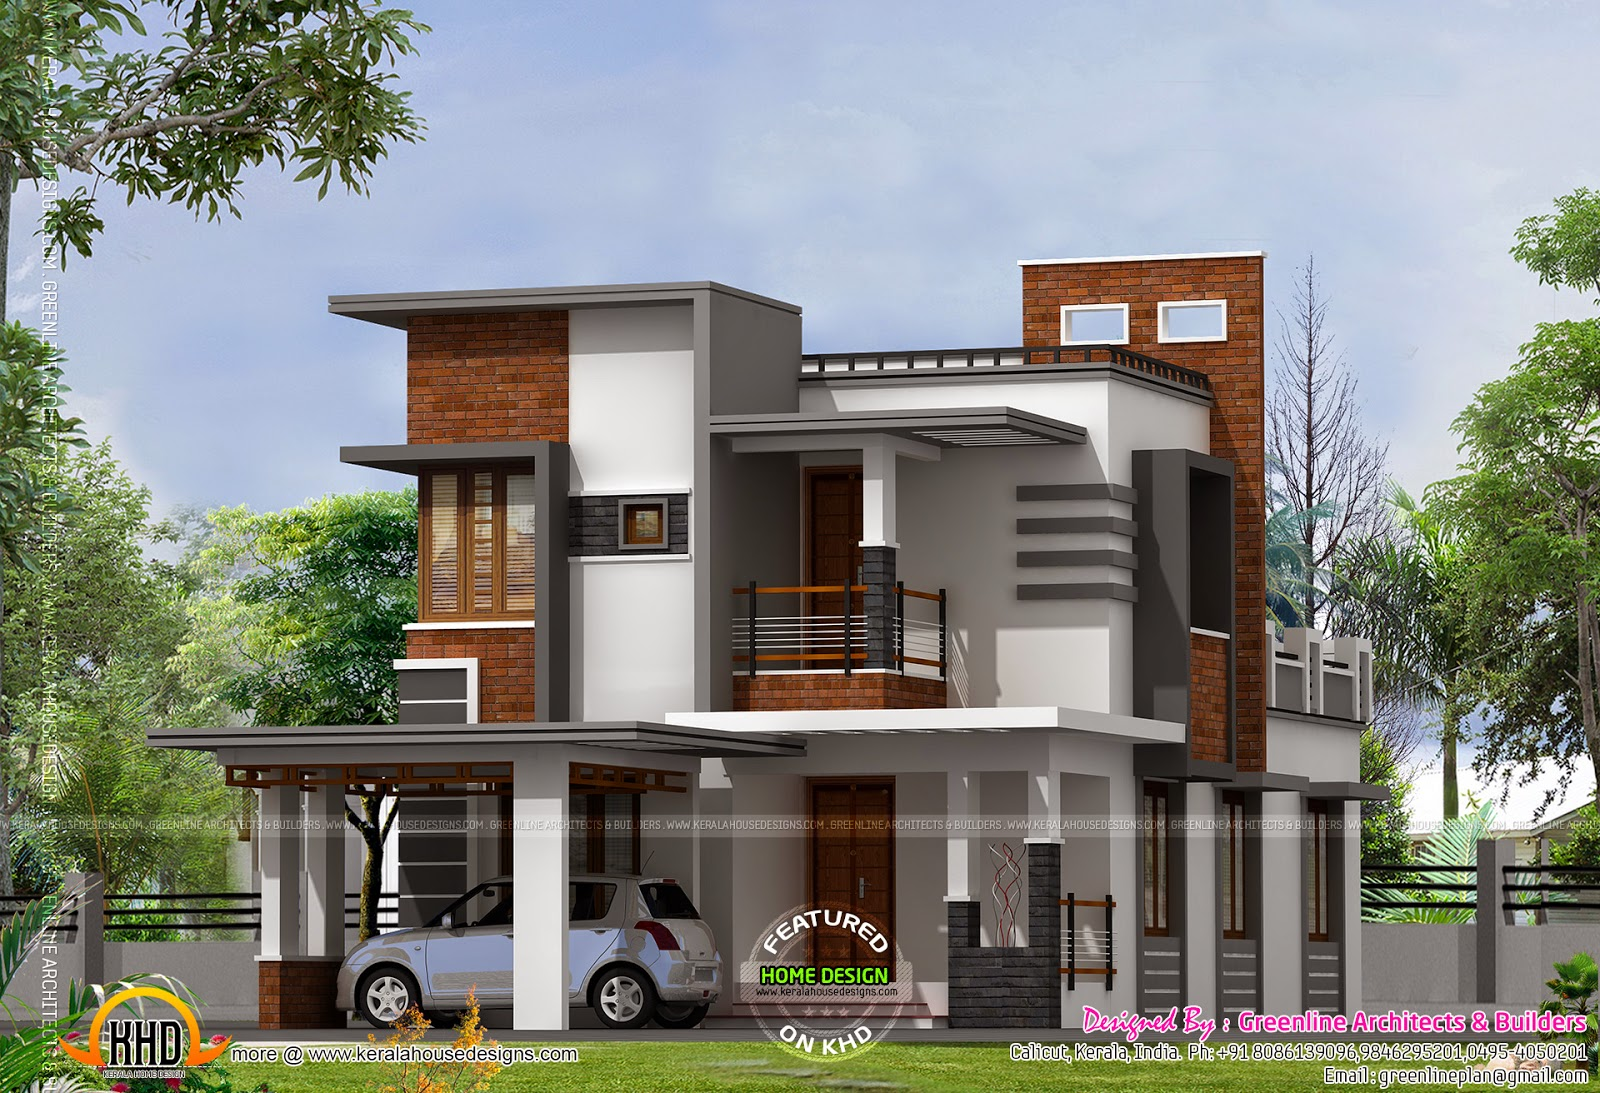 Low cost contemporary house kerala home design and floor for Tavoli design low cost